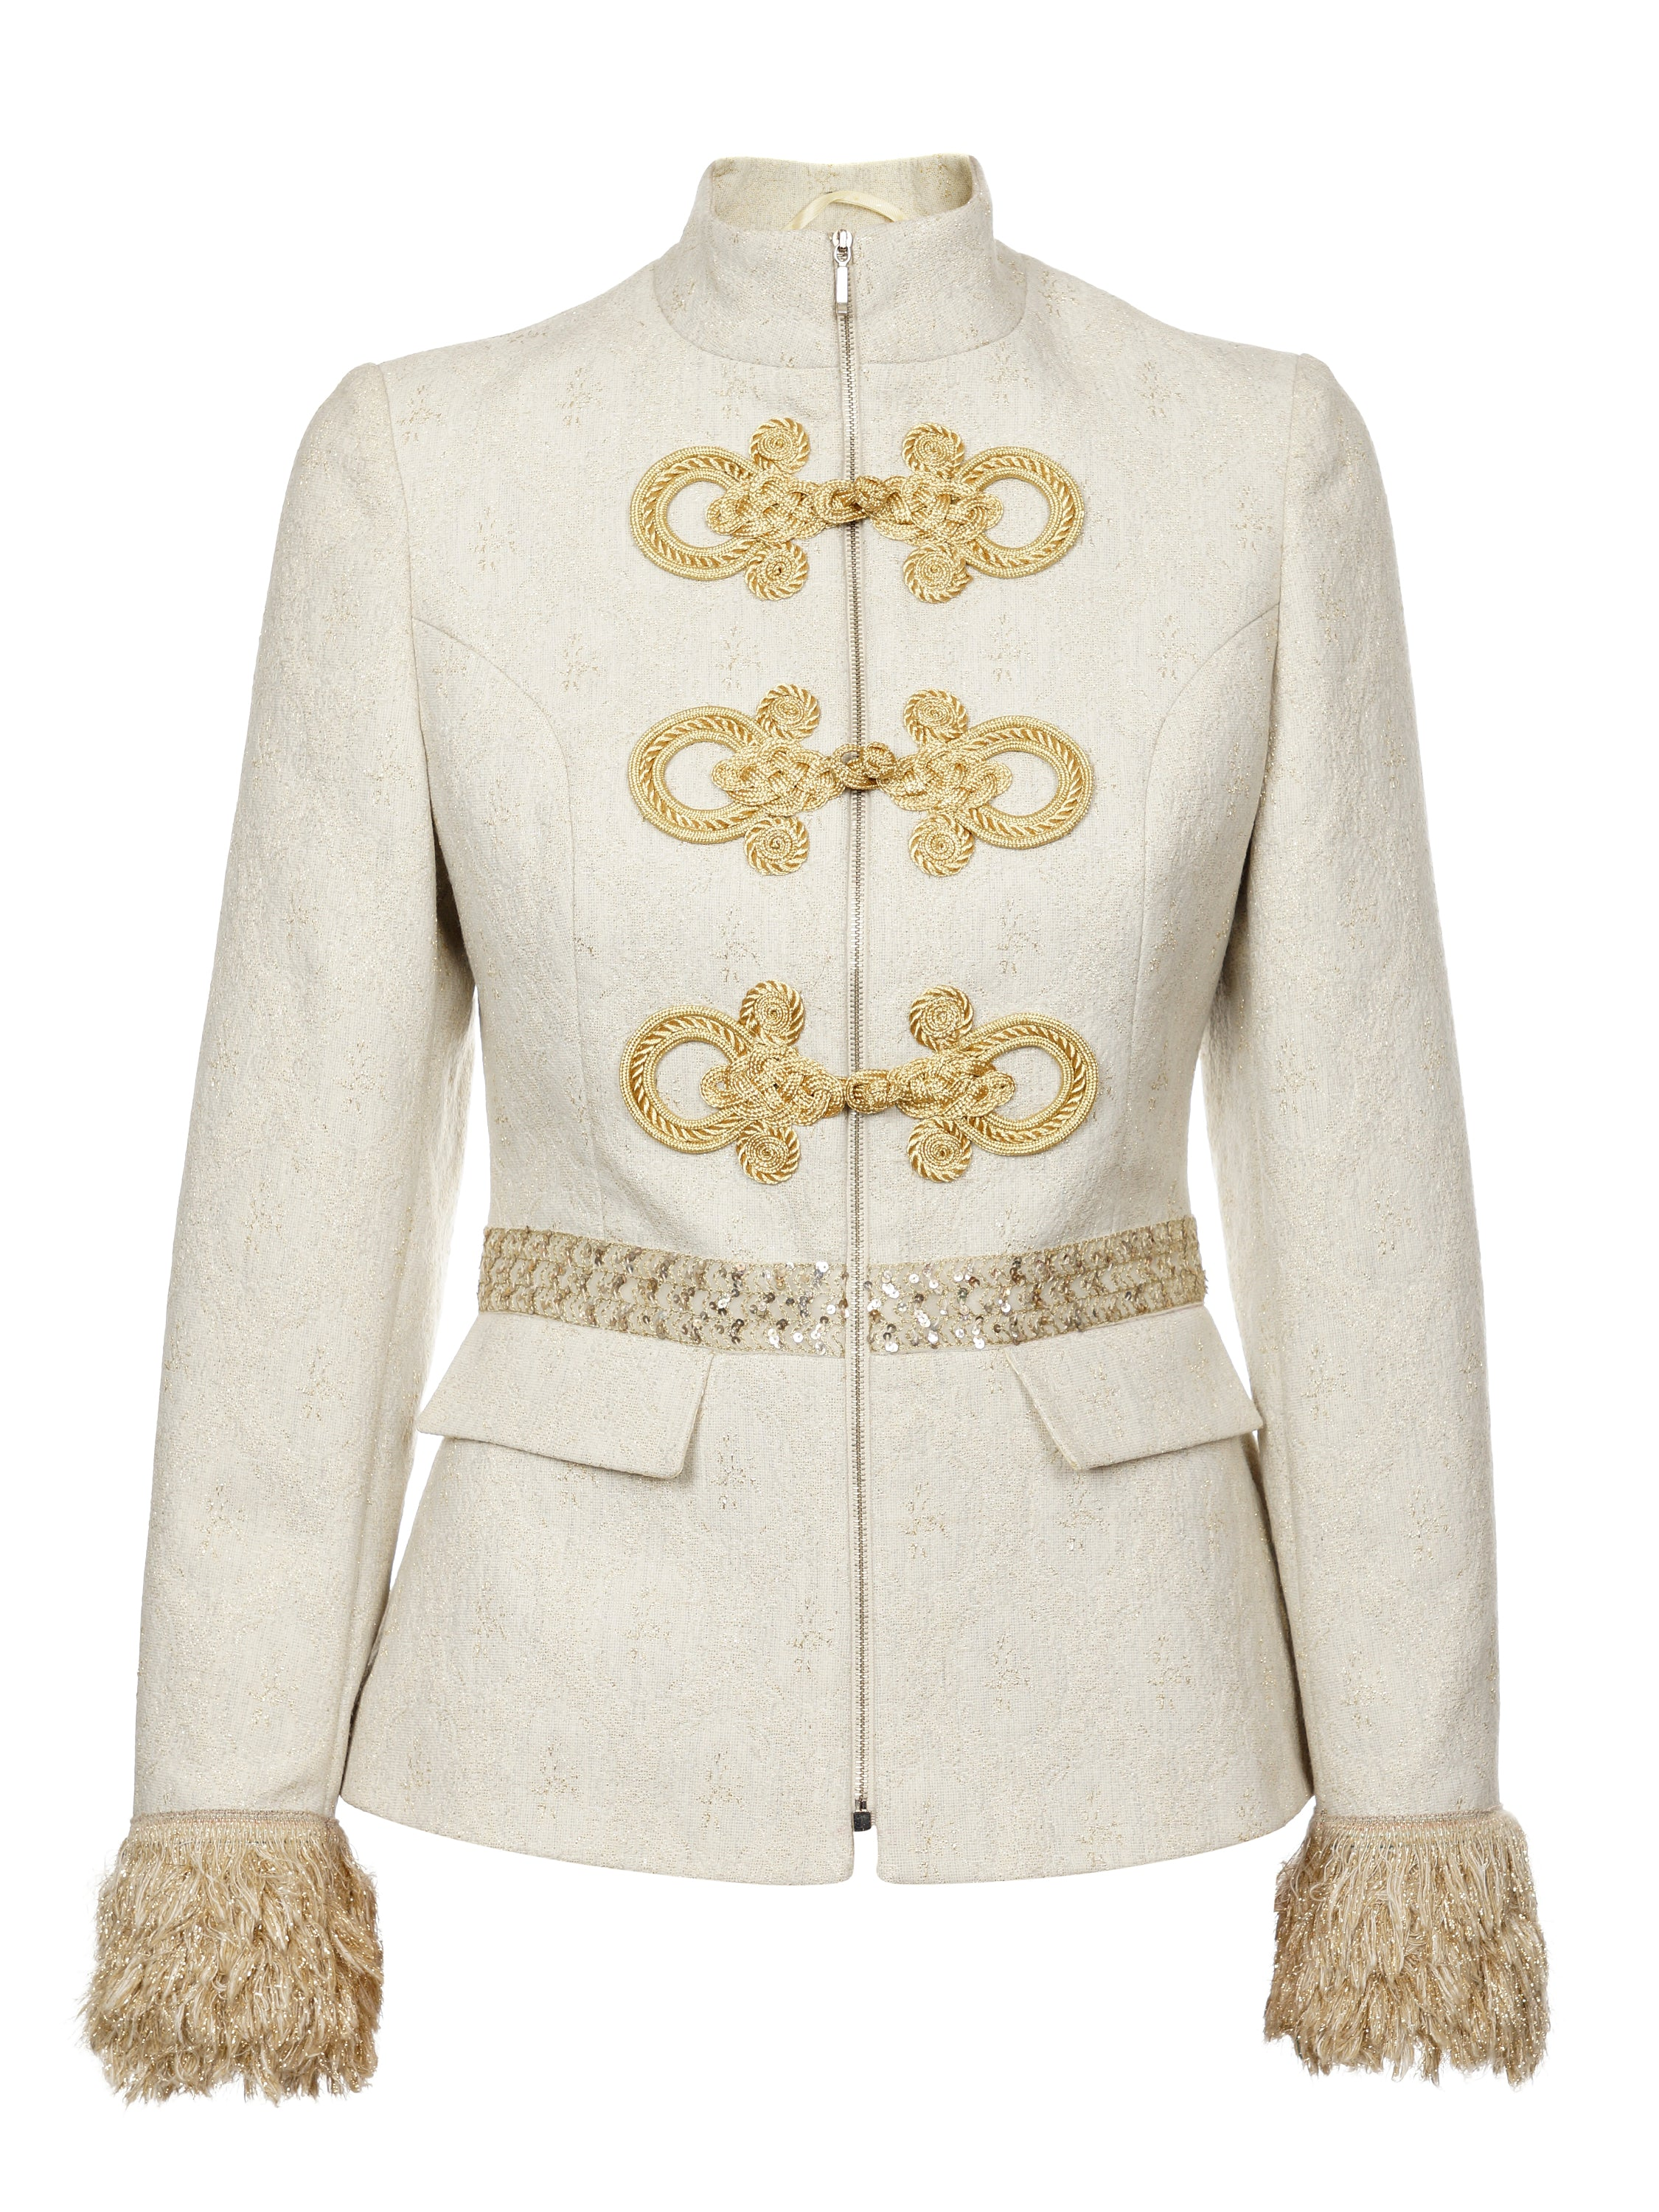 GOLD & WHITE OFFICER JACKET